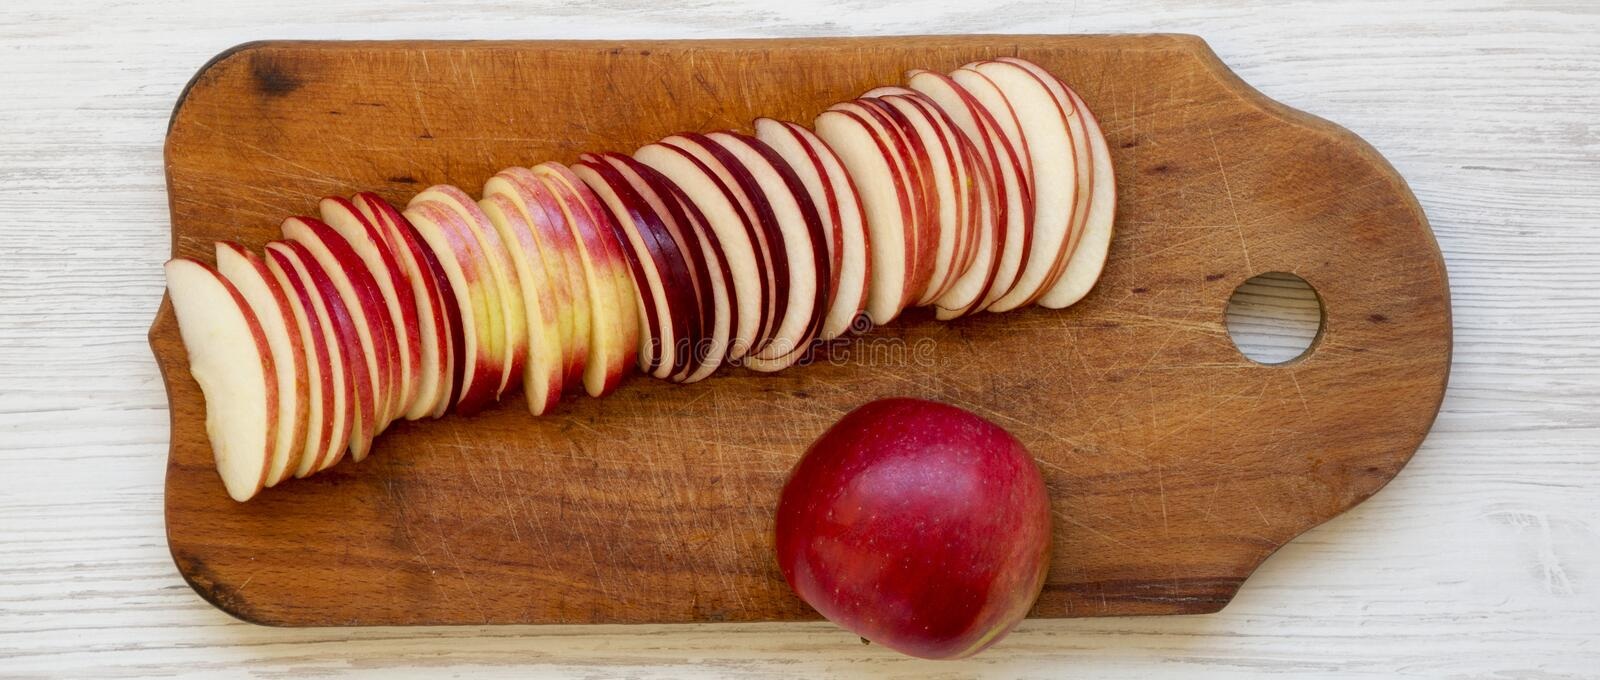 Slices of fresh red apples on rustic wooden board over white wooden background, top view. Flat lay, overhead, from above. Close-up royalty free stock photos